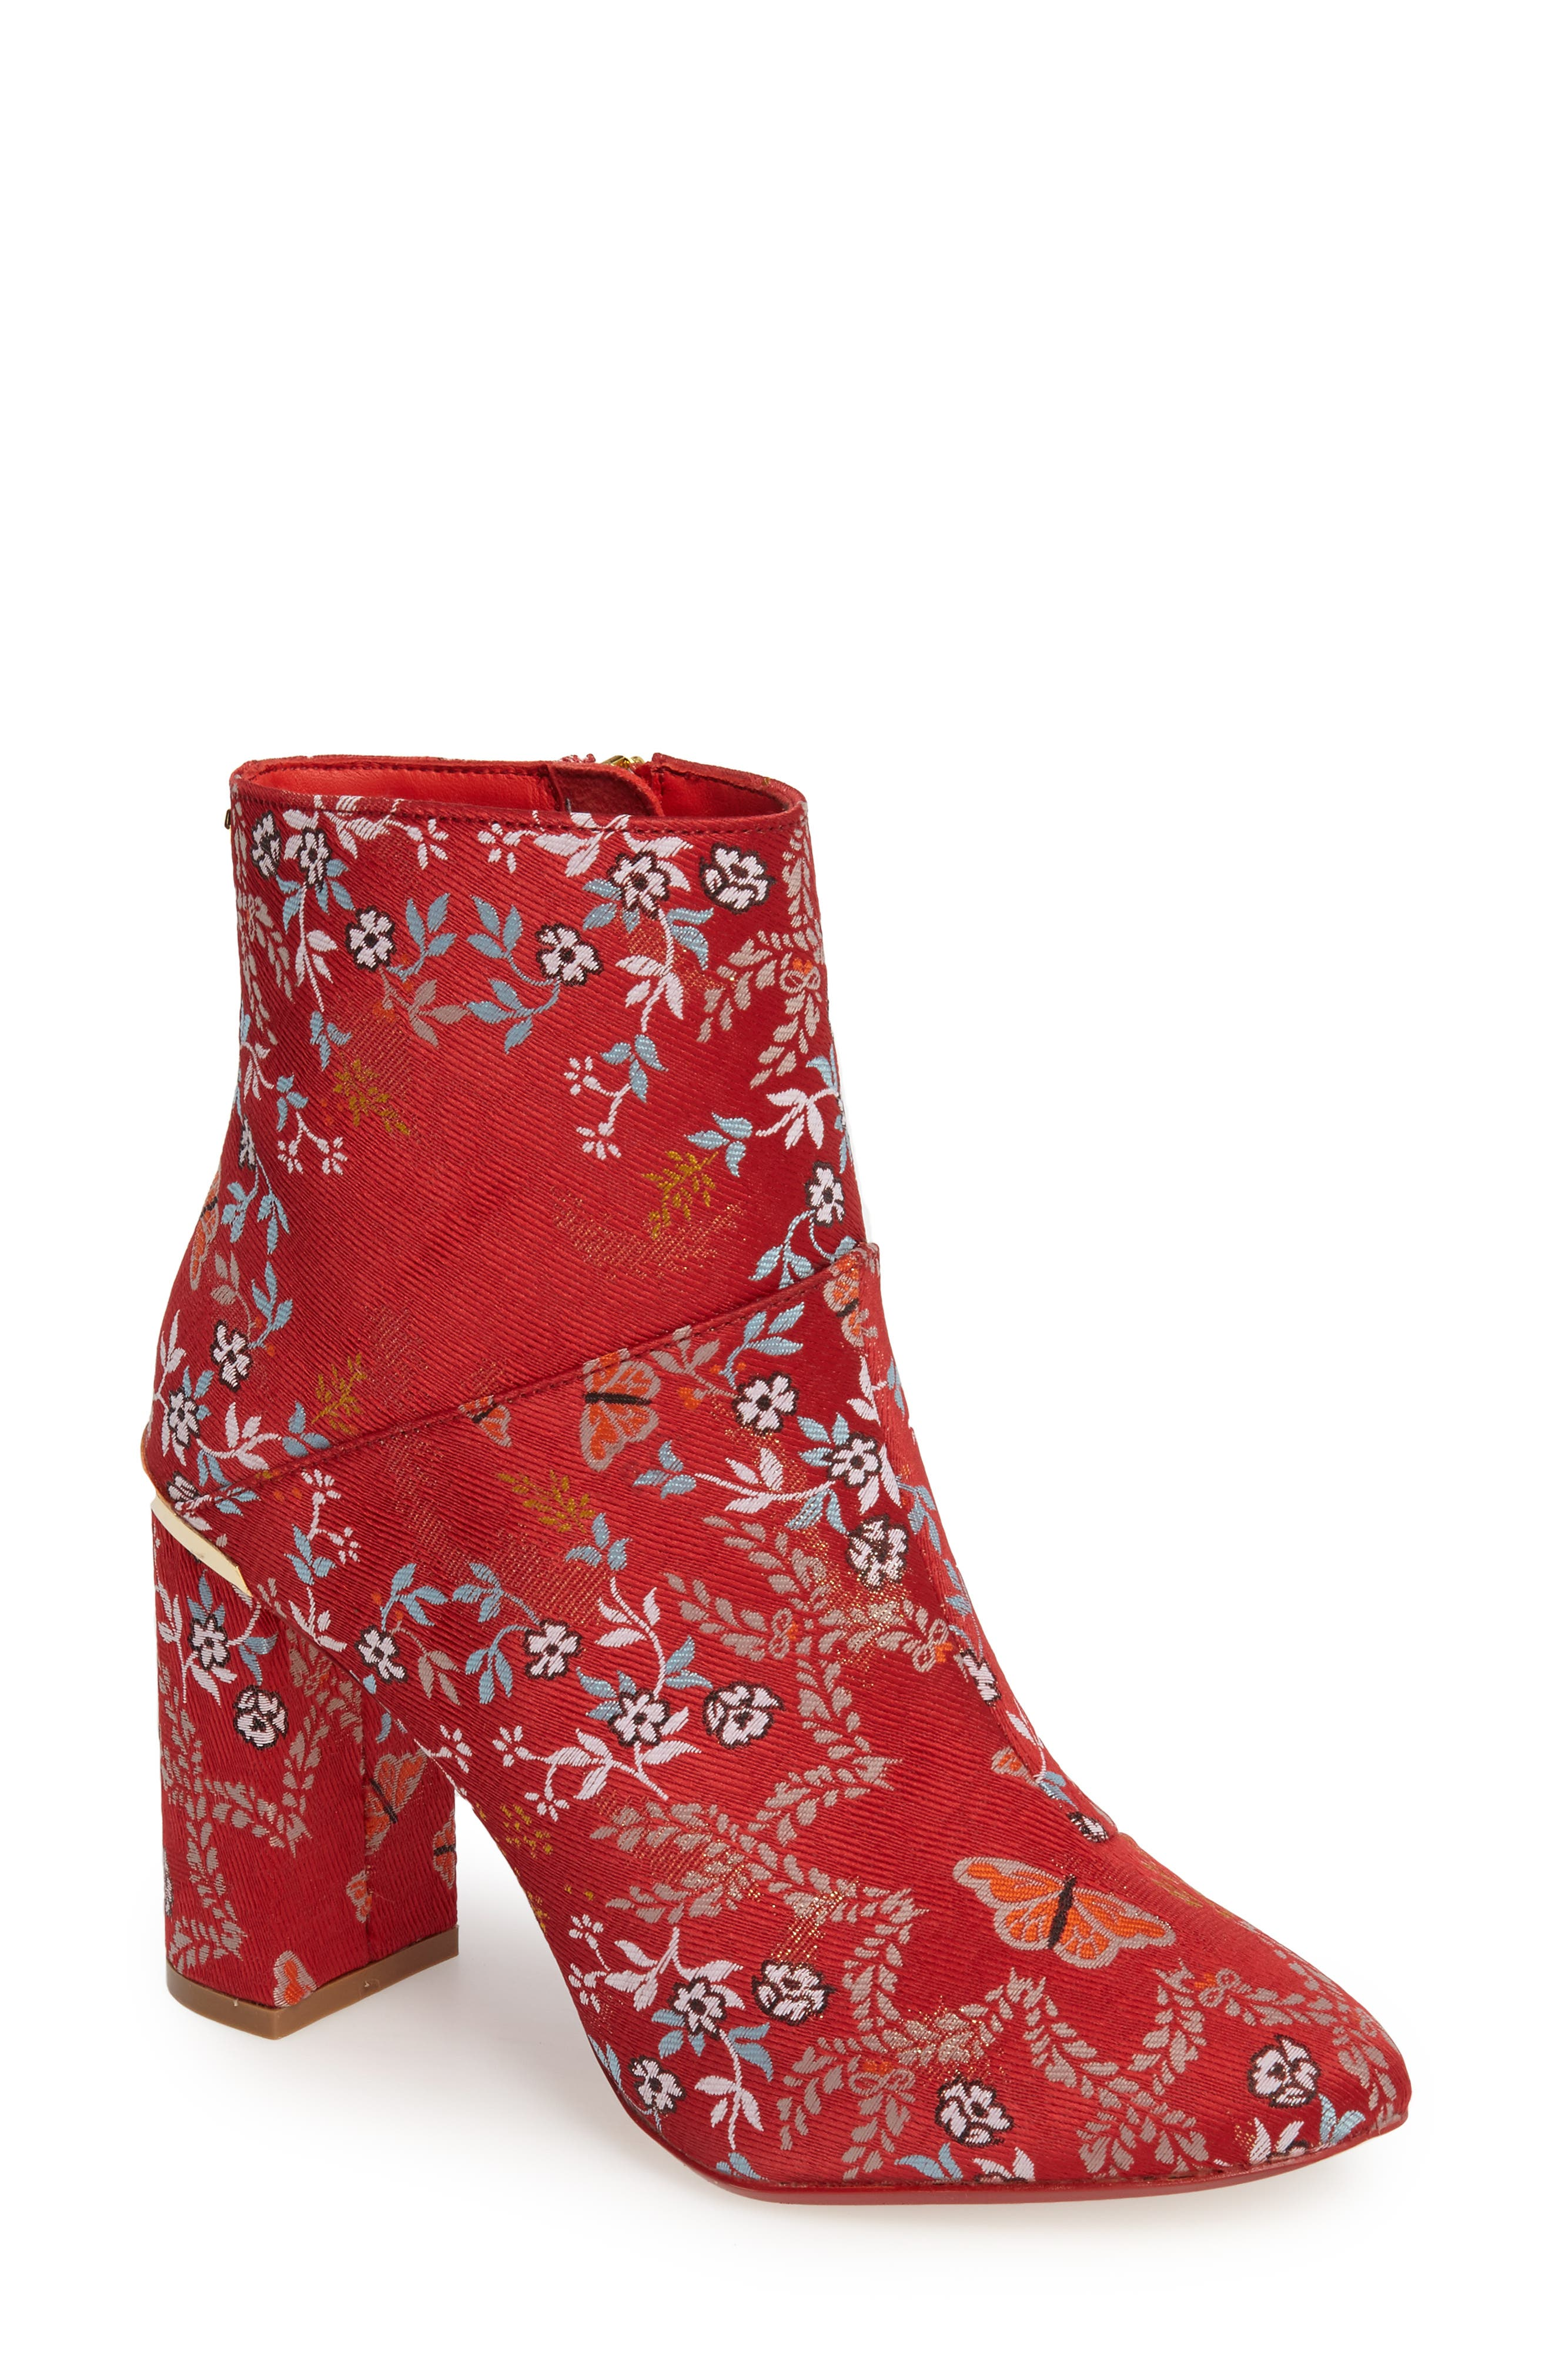 Ishbel Brocade Bootie,                             Main thumbnail 1, color,                             Red Kyoto Print